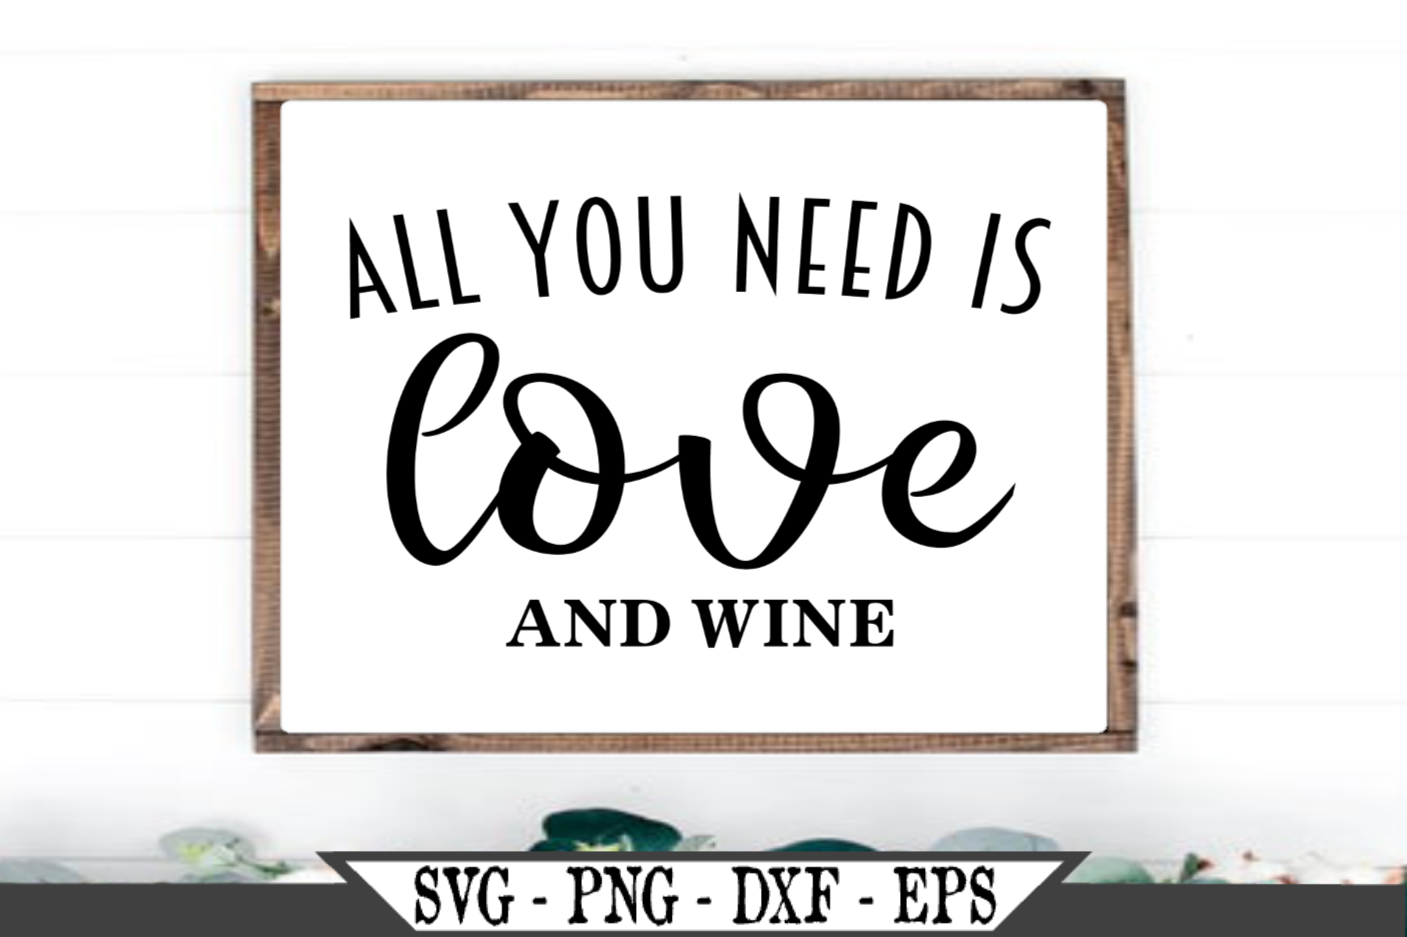 All You Need Is Love And Wine SVG example image 1